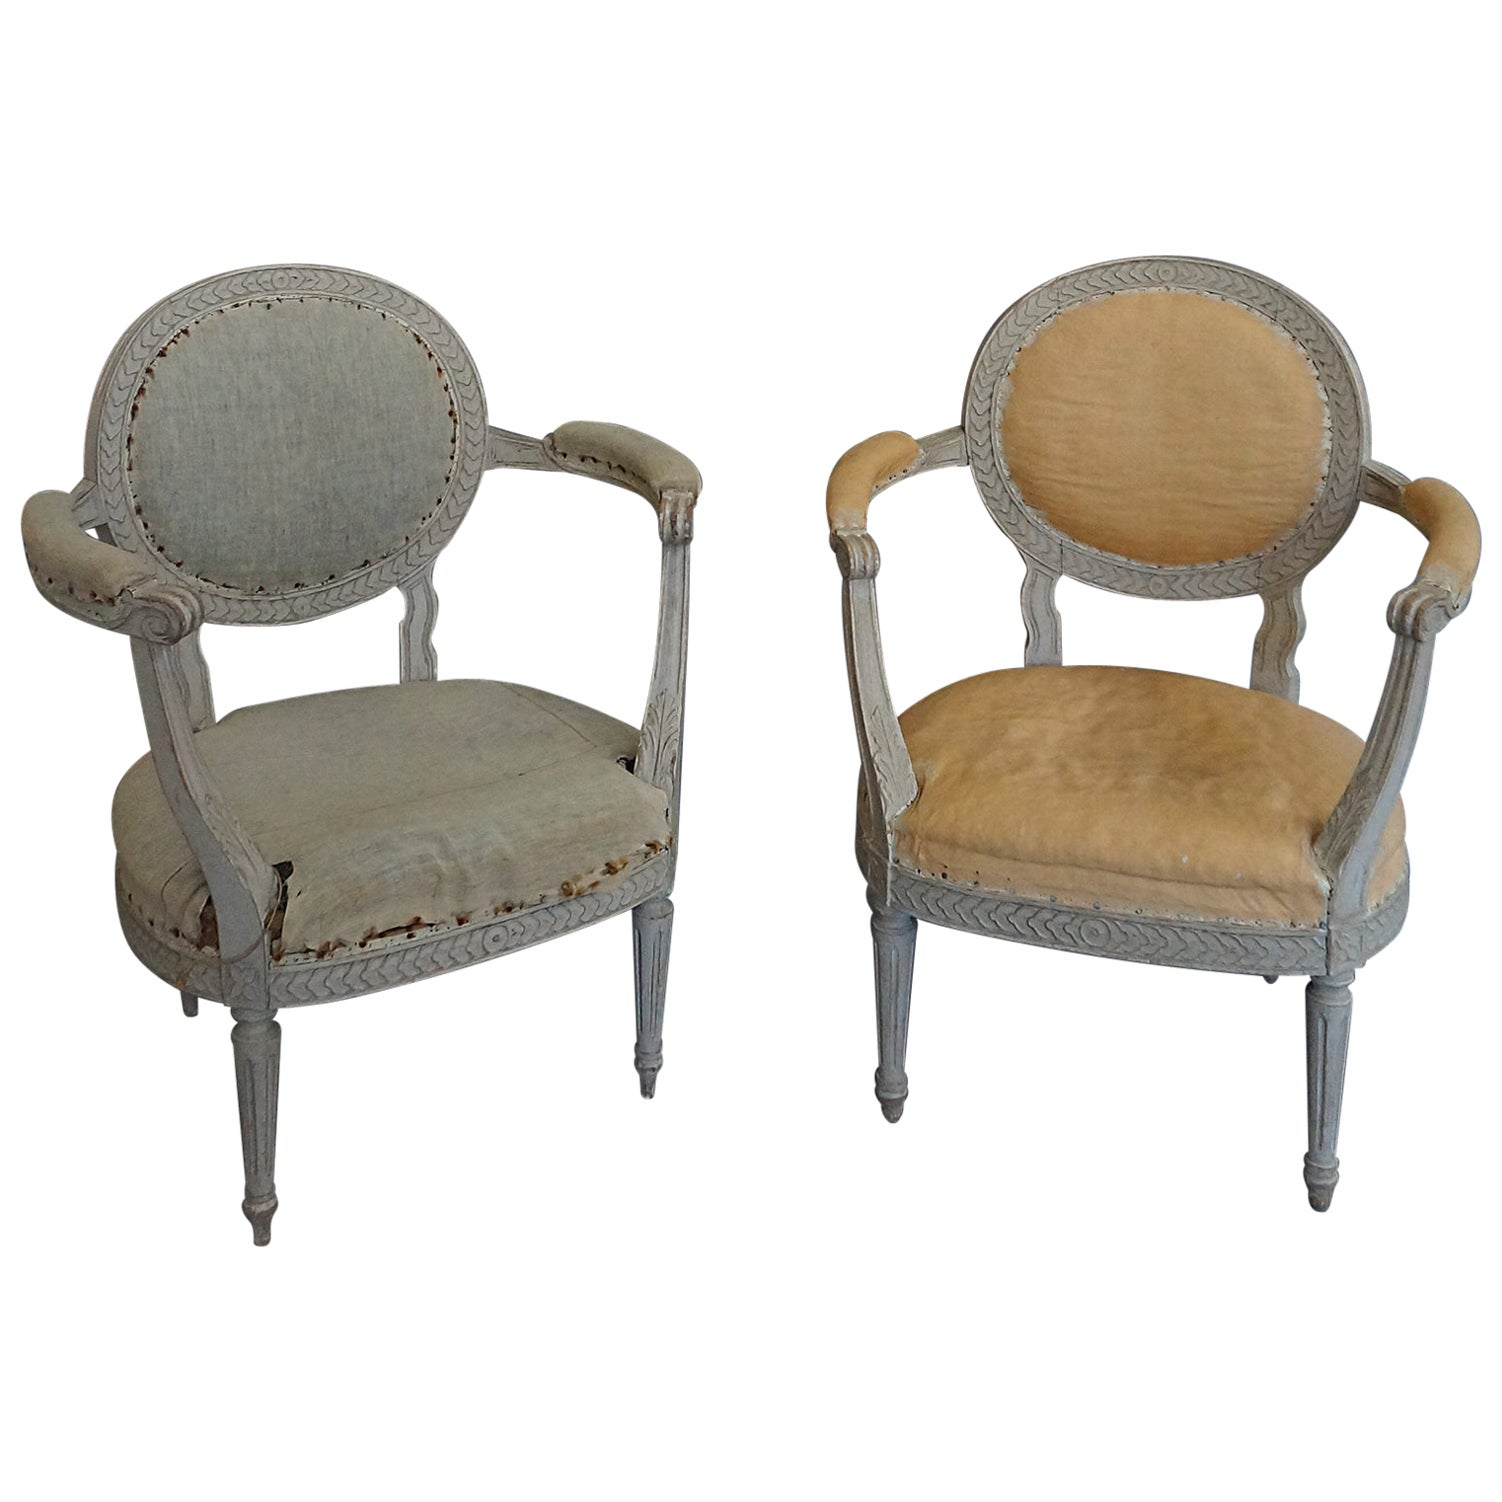 Pair of Oval Backed Swedish Armchairs